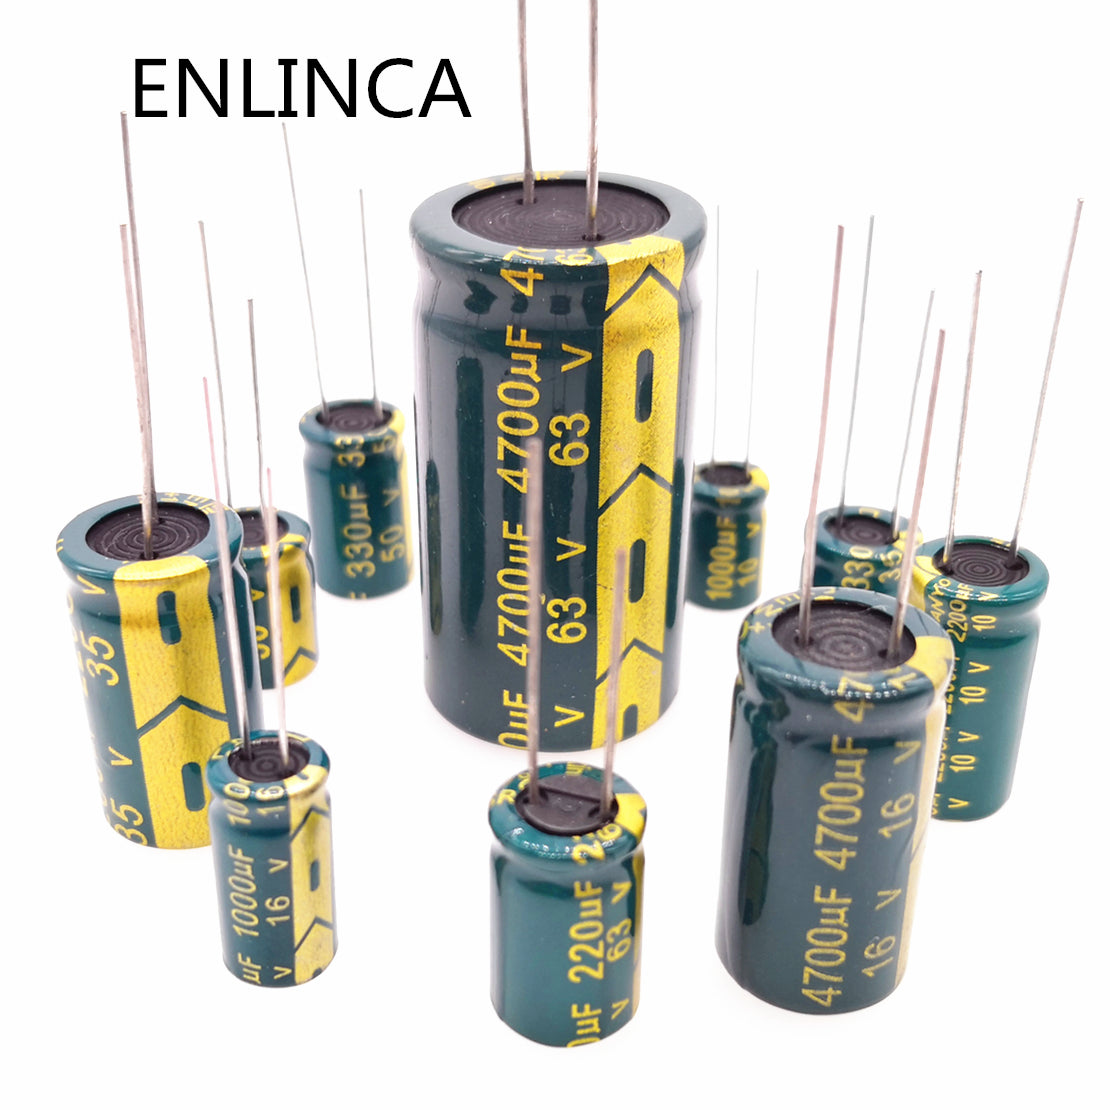 5-20pcs  Low ESR high frequency 47UF -2200UF aluminum capacitor